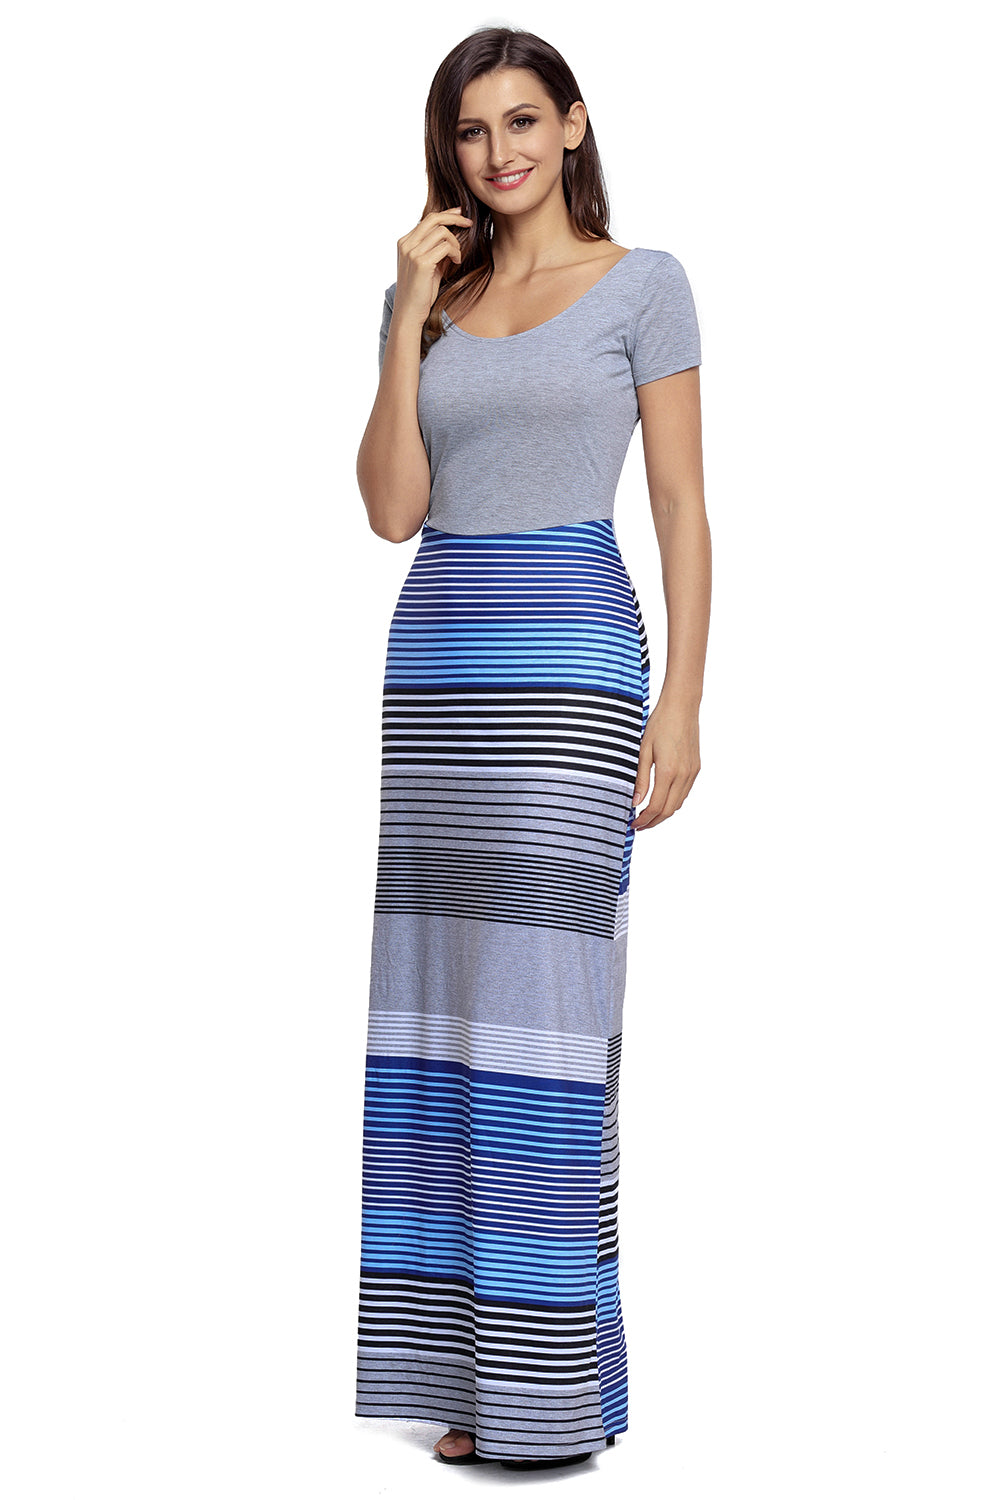 Gorgeous Navy Blue Crisscross Back Muliticolor Her Fashion Maxi Dress